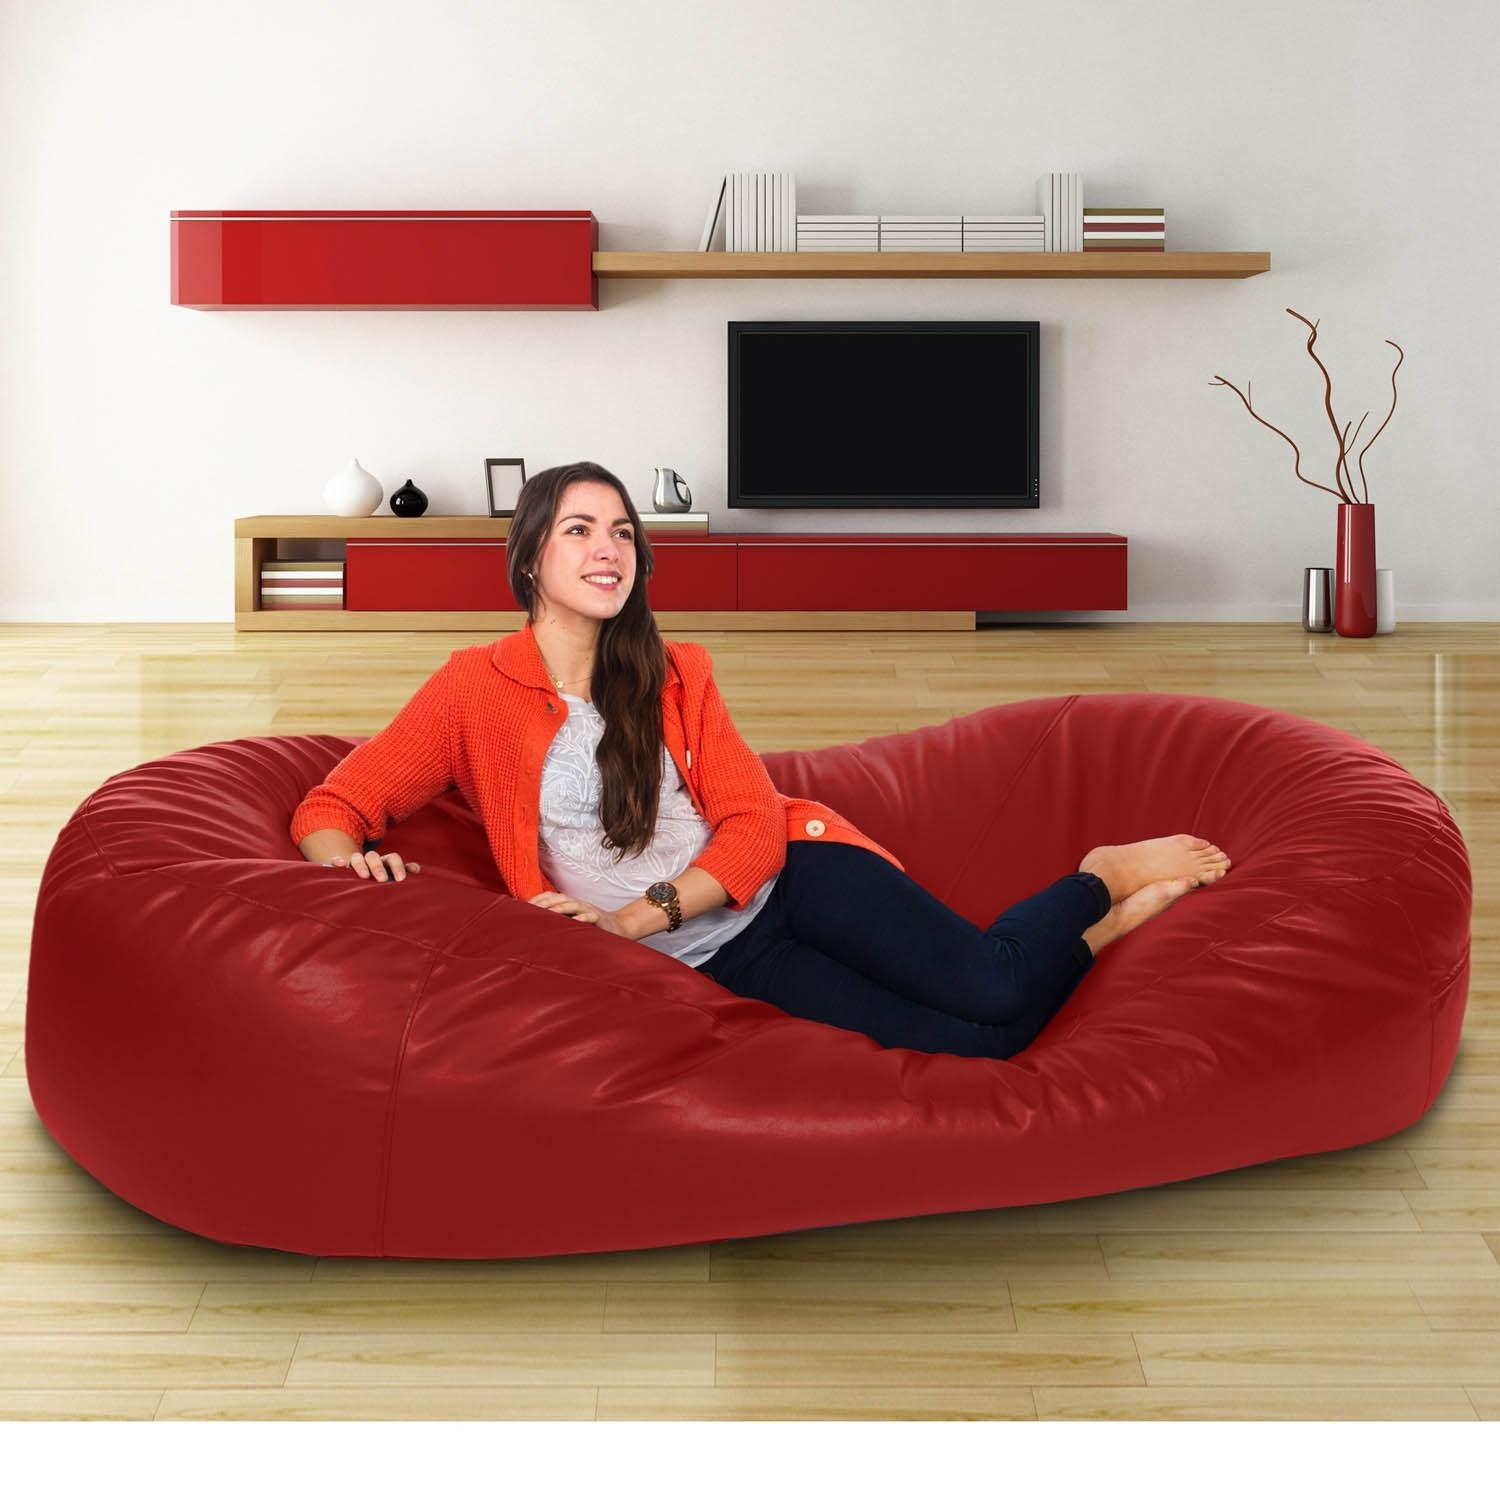 Ideas Of A Leather Bean Bag Sofa — Home Ideas Collection Regarding Bean Bag Sofas And Chairs (Image 12 of 20)